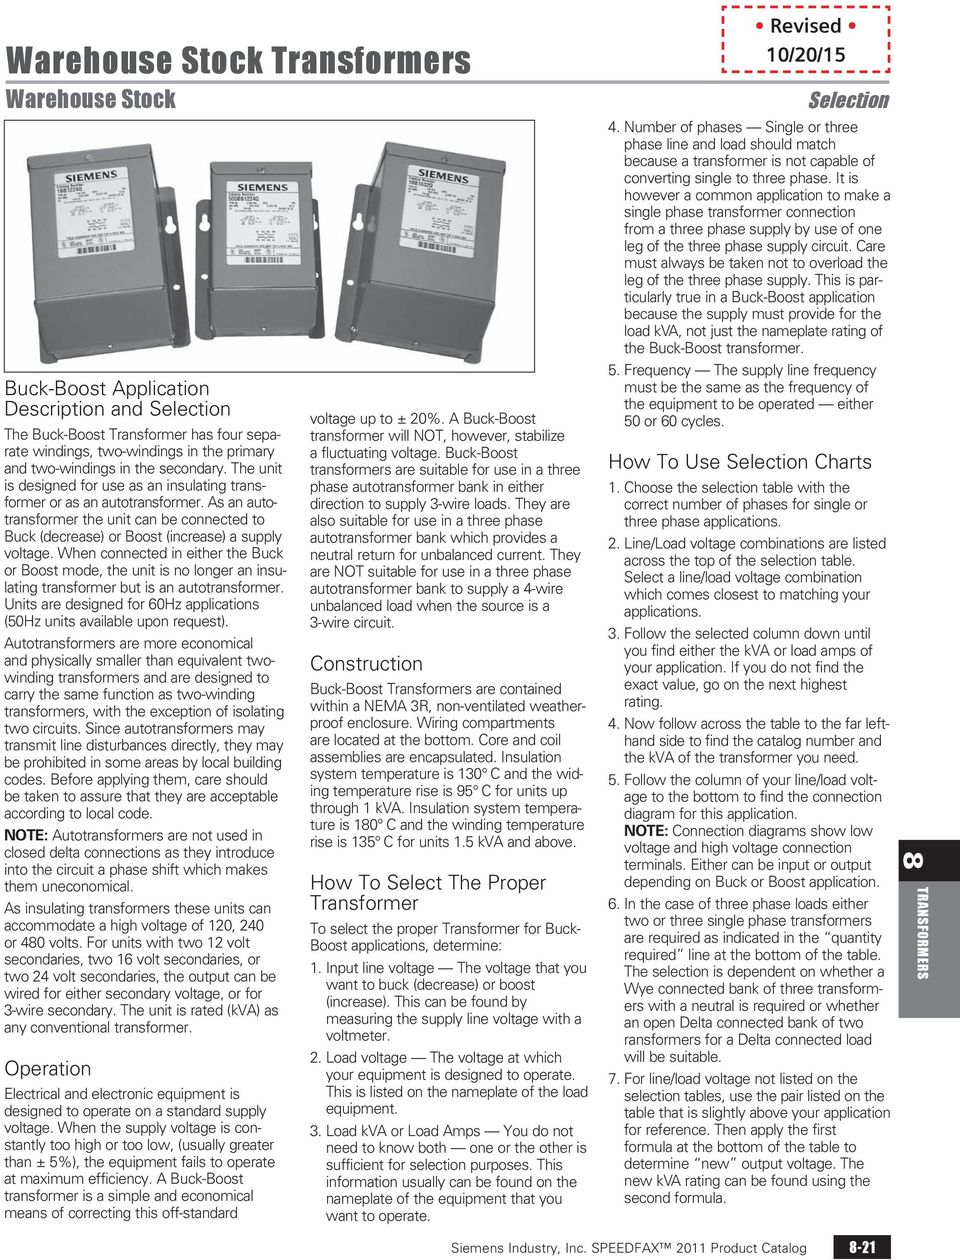 Distribution Dry Type Transformers Pdf Siemens Transformer Wiring Diagram When Connected In Either The Buck Or Boost Mode Unit Is No Longer An